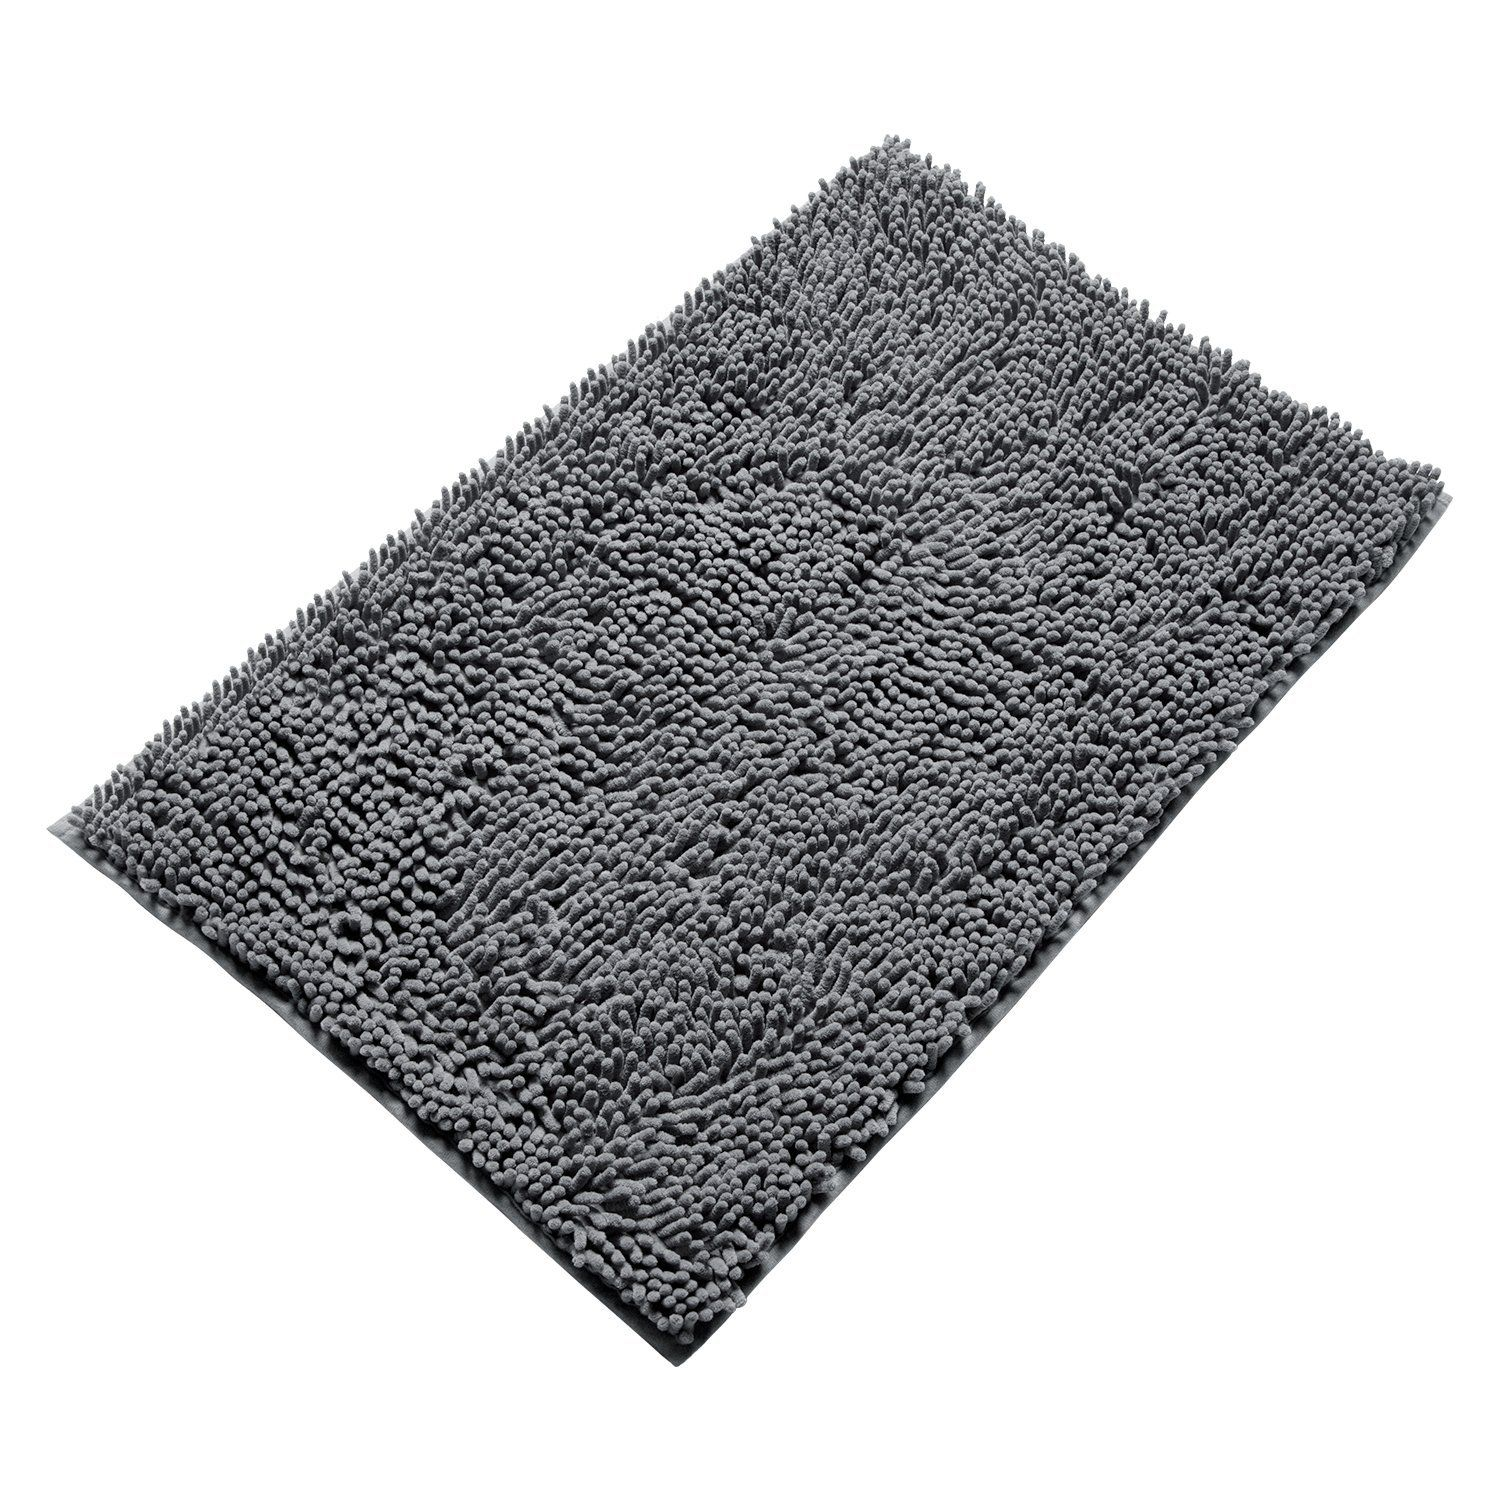 Recommended 7 Best Non Slip Bath Mat In 2020 Find Best Review Green Bath Rugs Shower Rugs Shag Bathroom Rugs